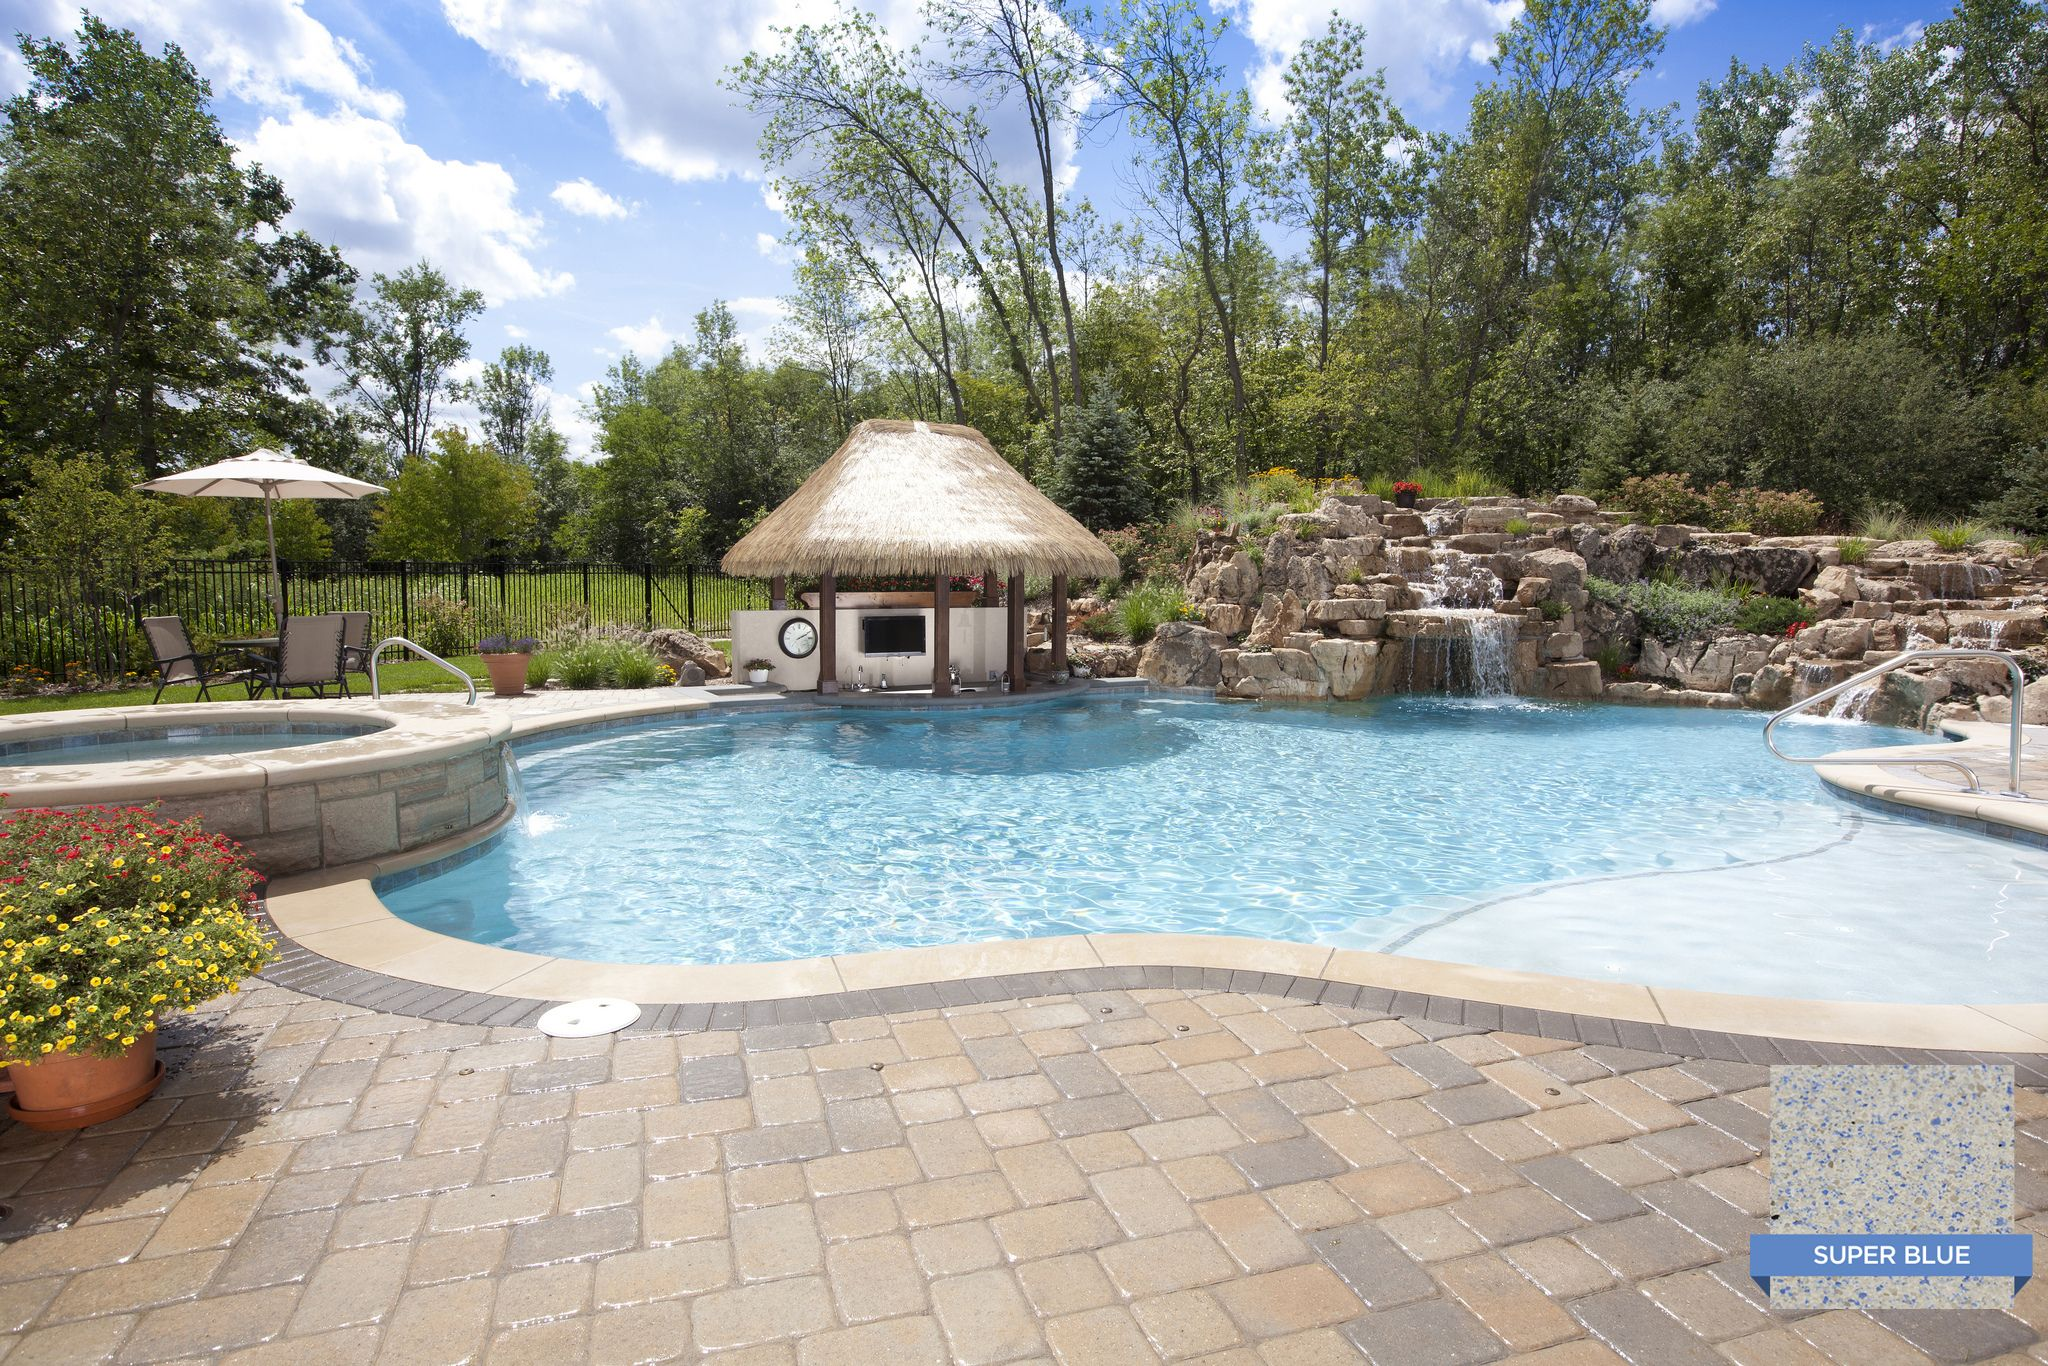 Krystalkrete Super Blue Will Make Any Pool S Water Color Bright And Blue Rosebrook Pools Libertyville Illinois Swim Pool Finishes Pool Colors Swimming Pools